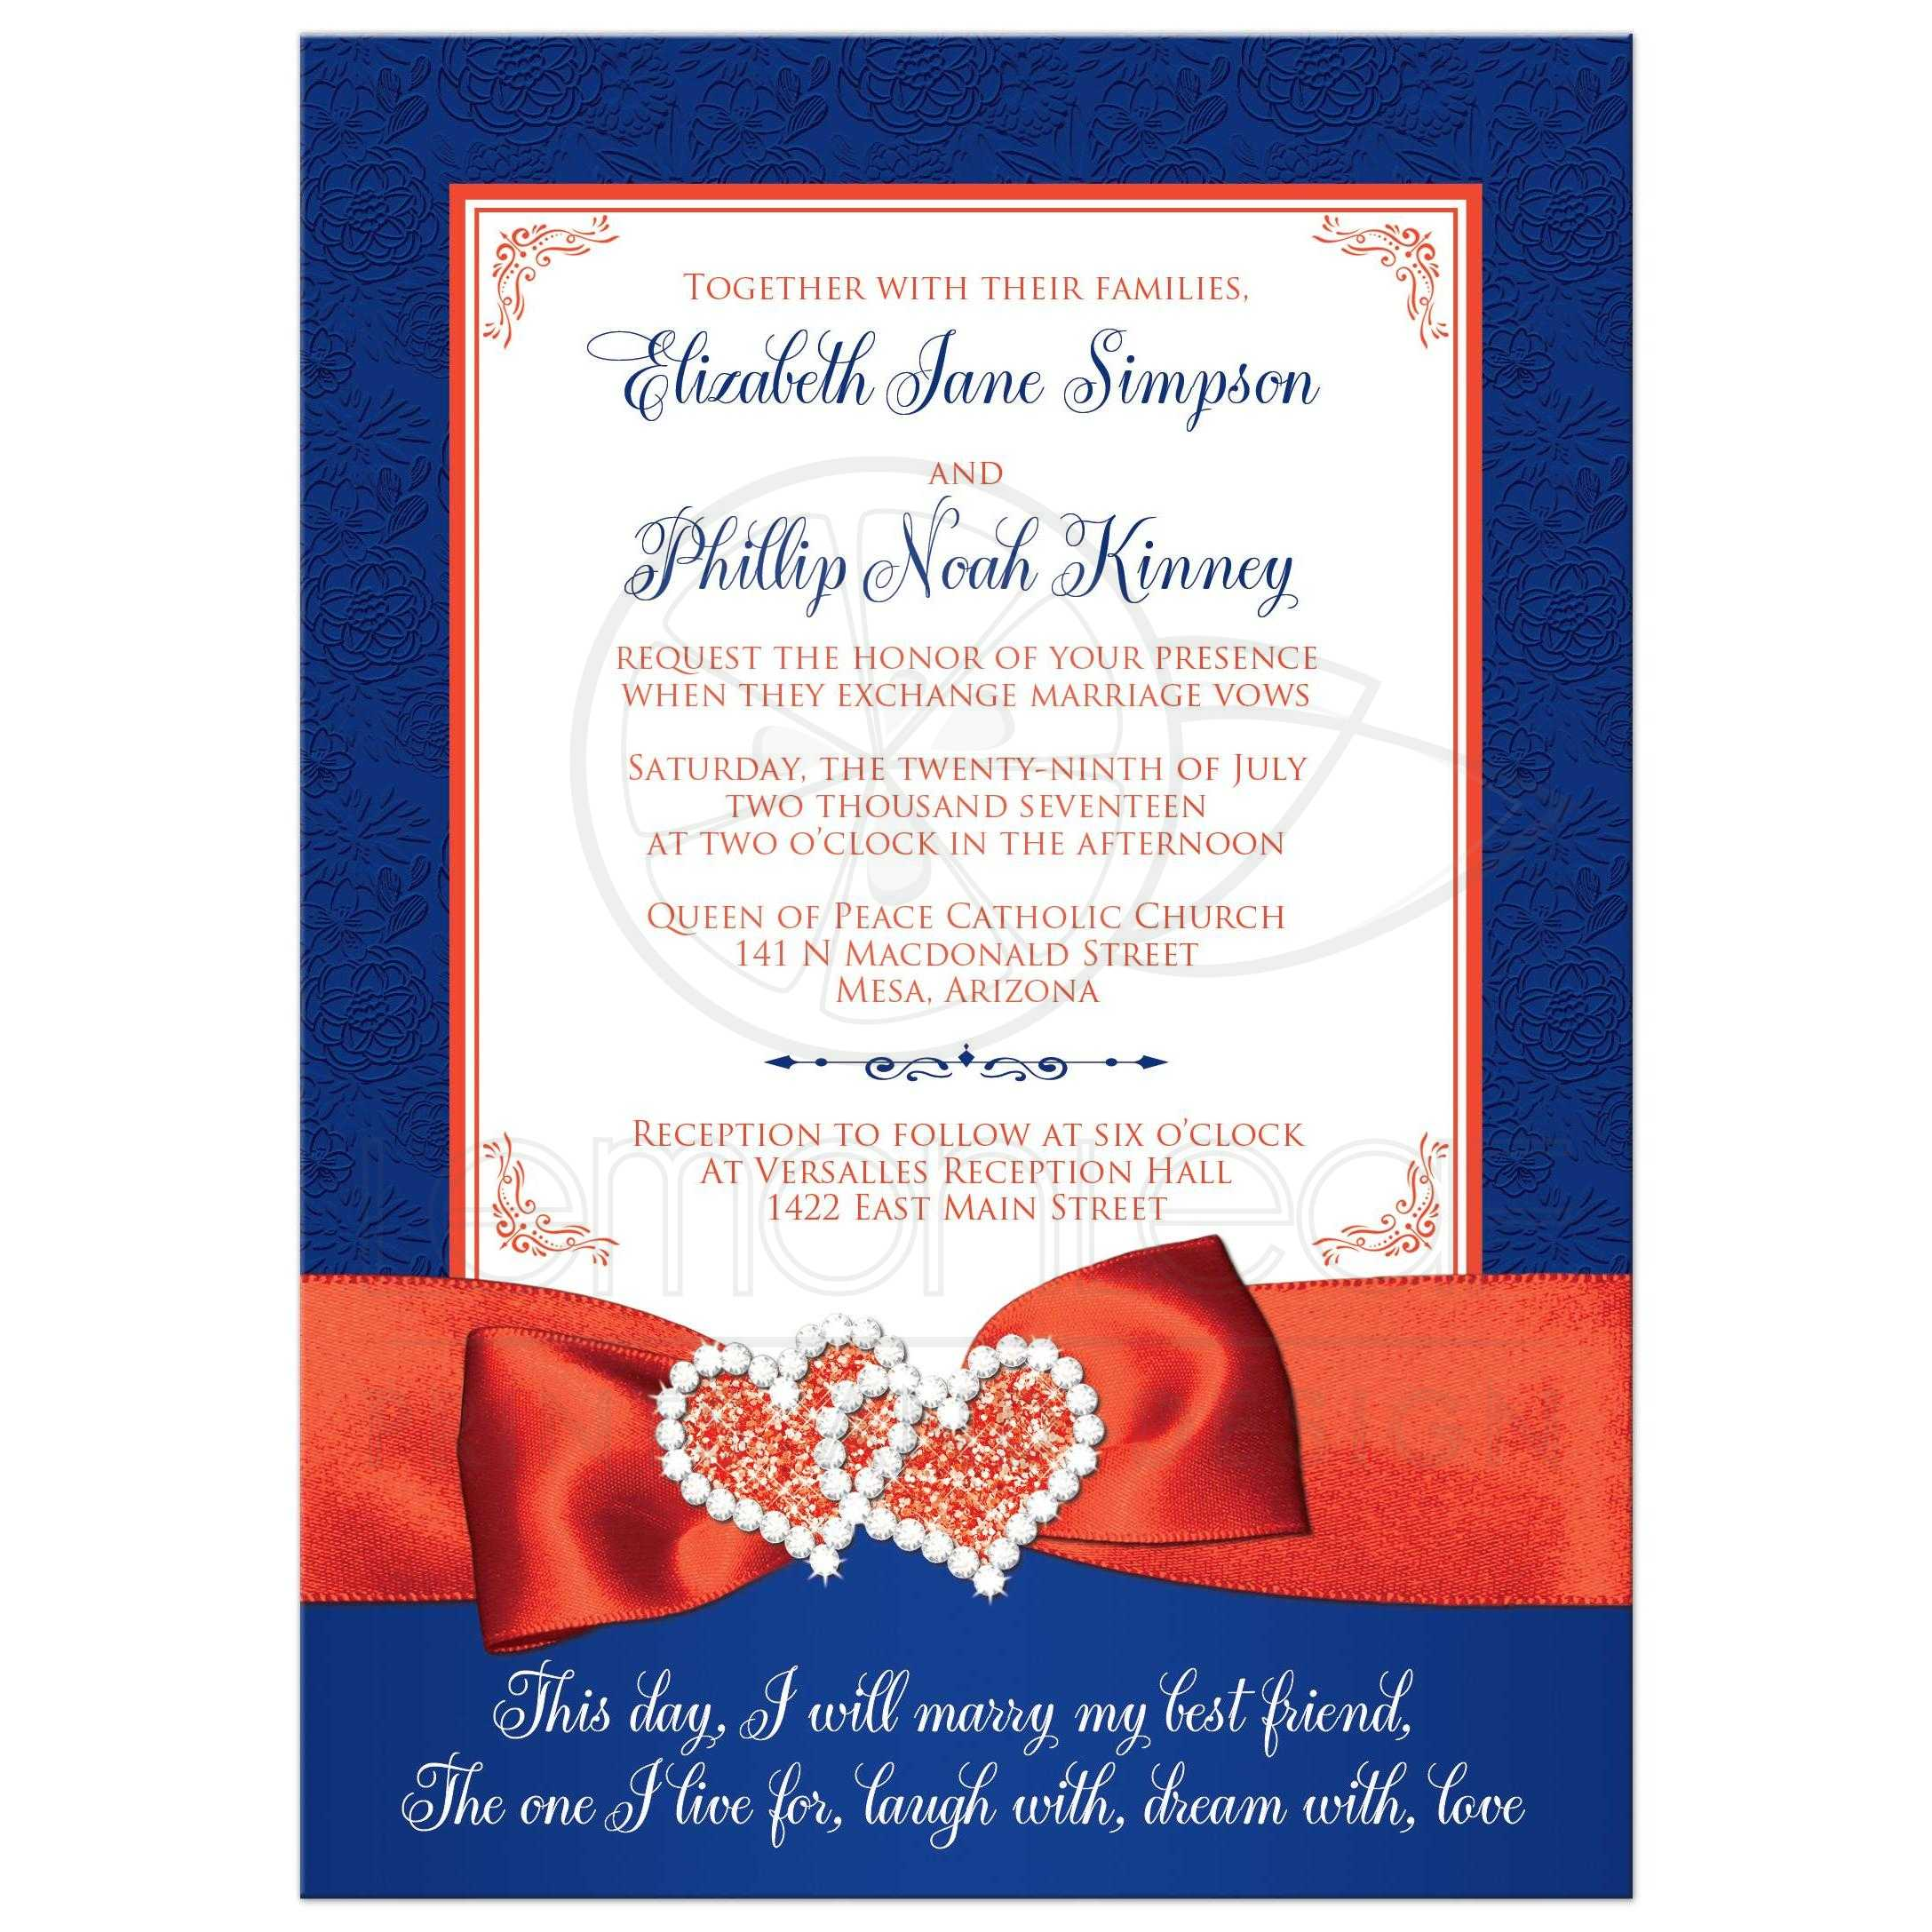 Royal Blue, Orange, And White Floral Pattern Wedding Invitations With  Ribbon, ...